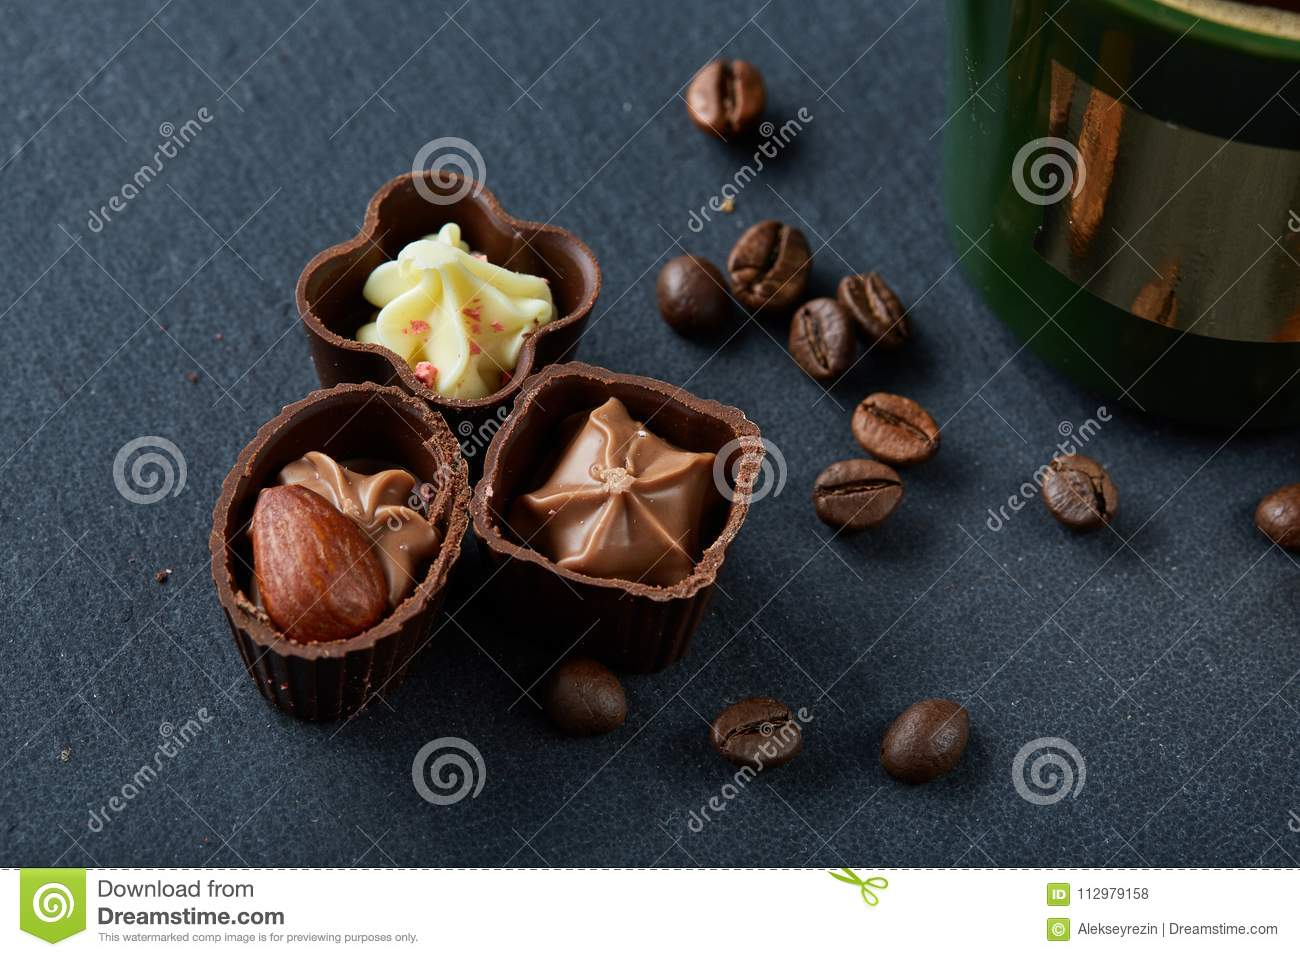 Coffee cup, coffee beans, chocolate candies on stone board over wooden background, selective focus, close-up